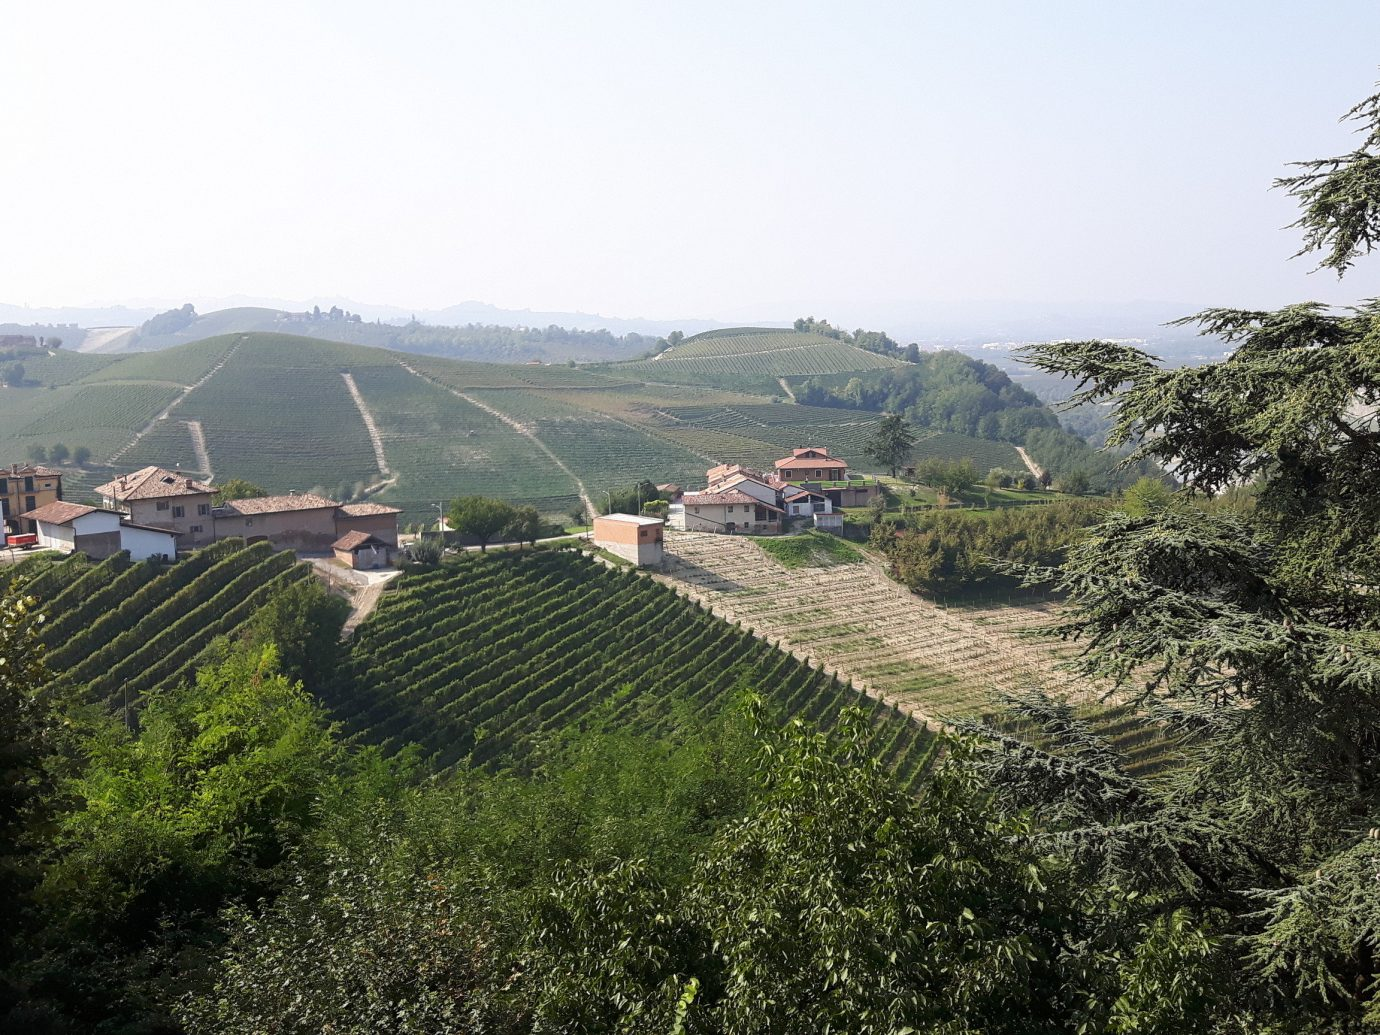 View of Piedmont in Italy